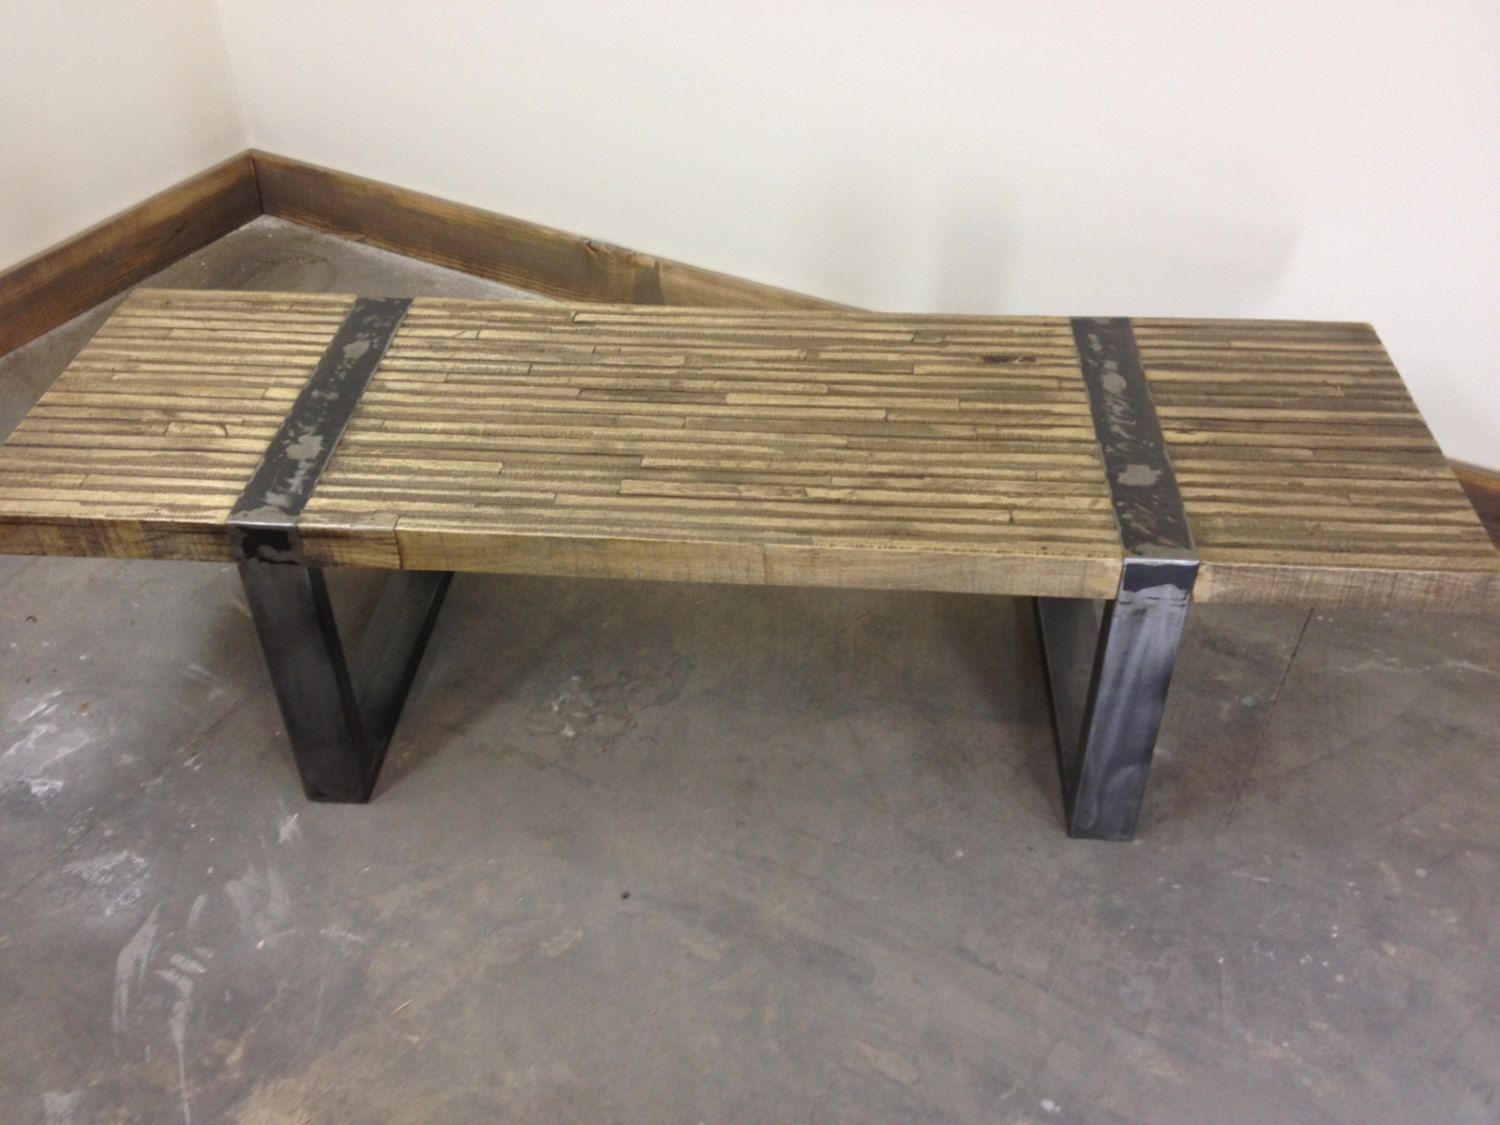 Rustic Industrial Coffee Table or Bench with Metal Bands by